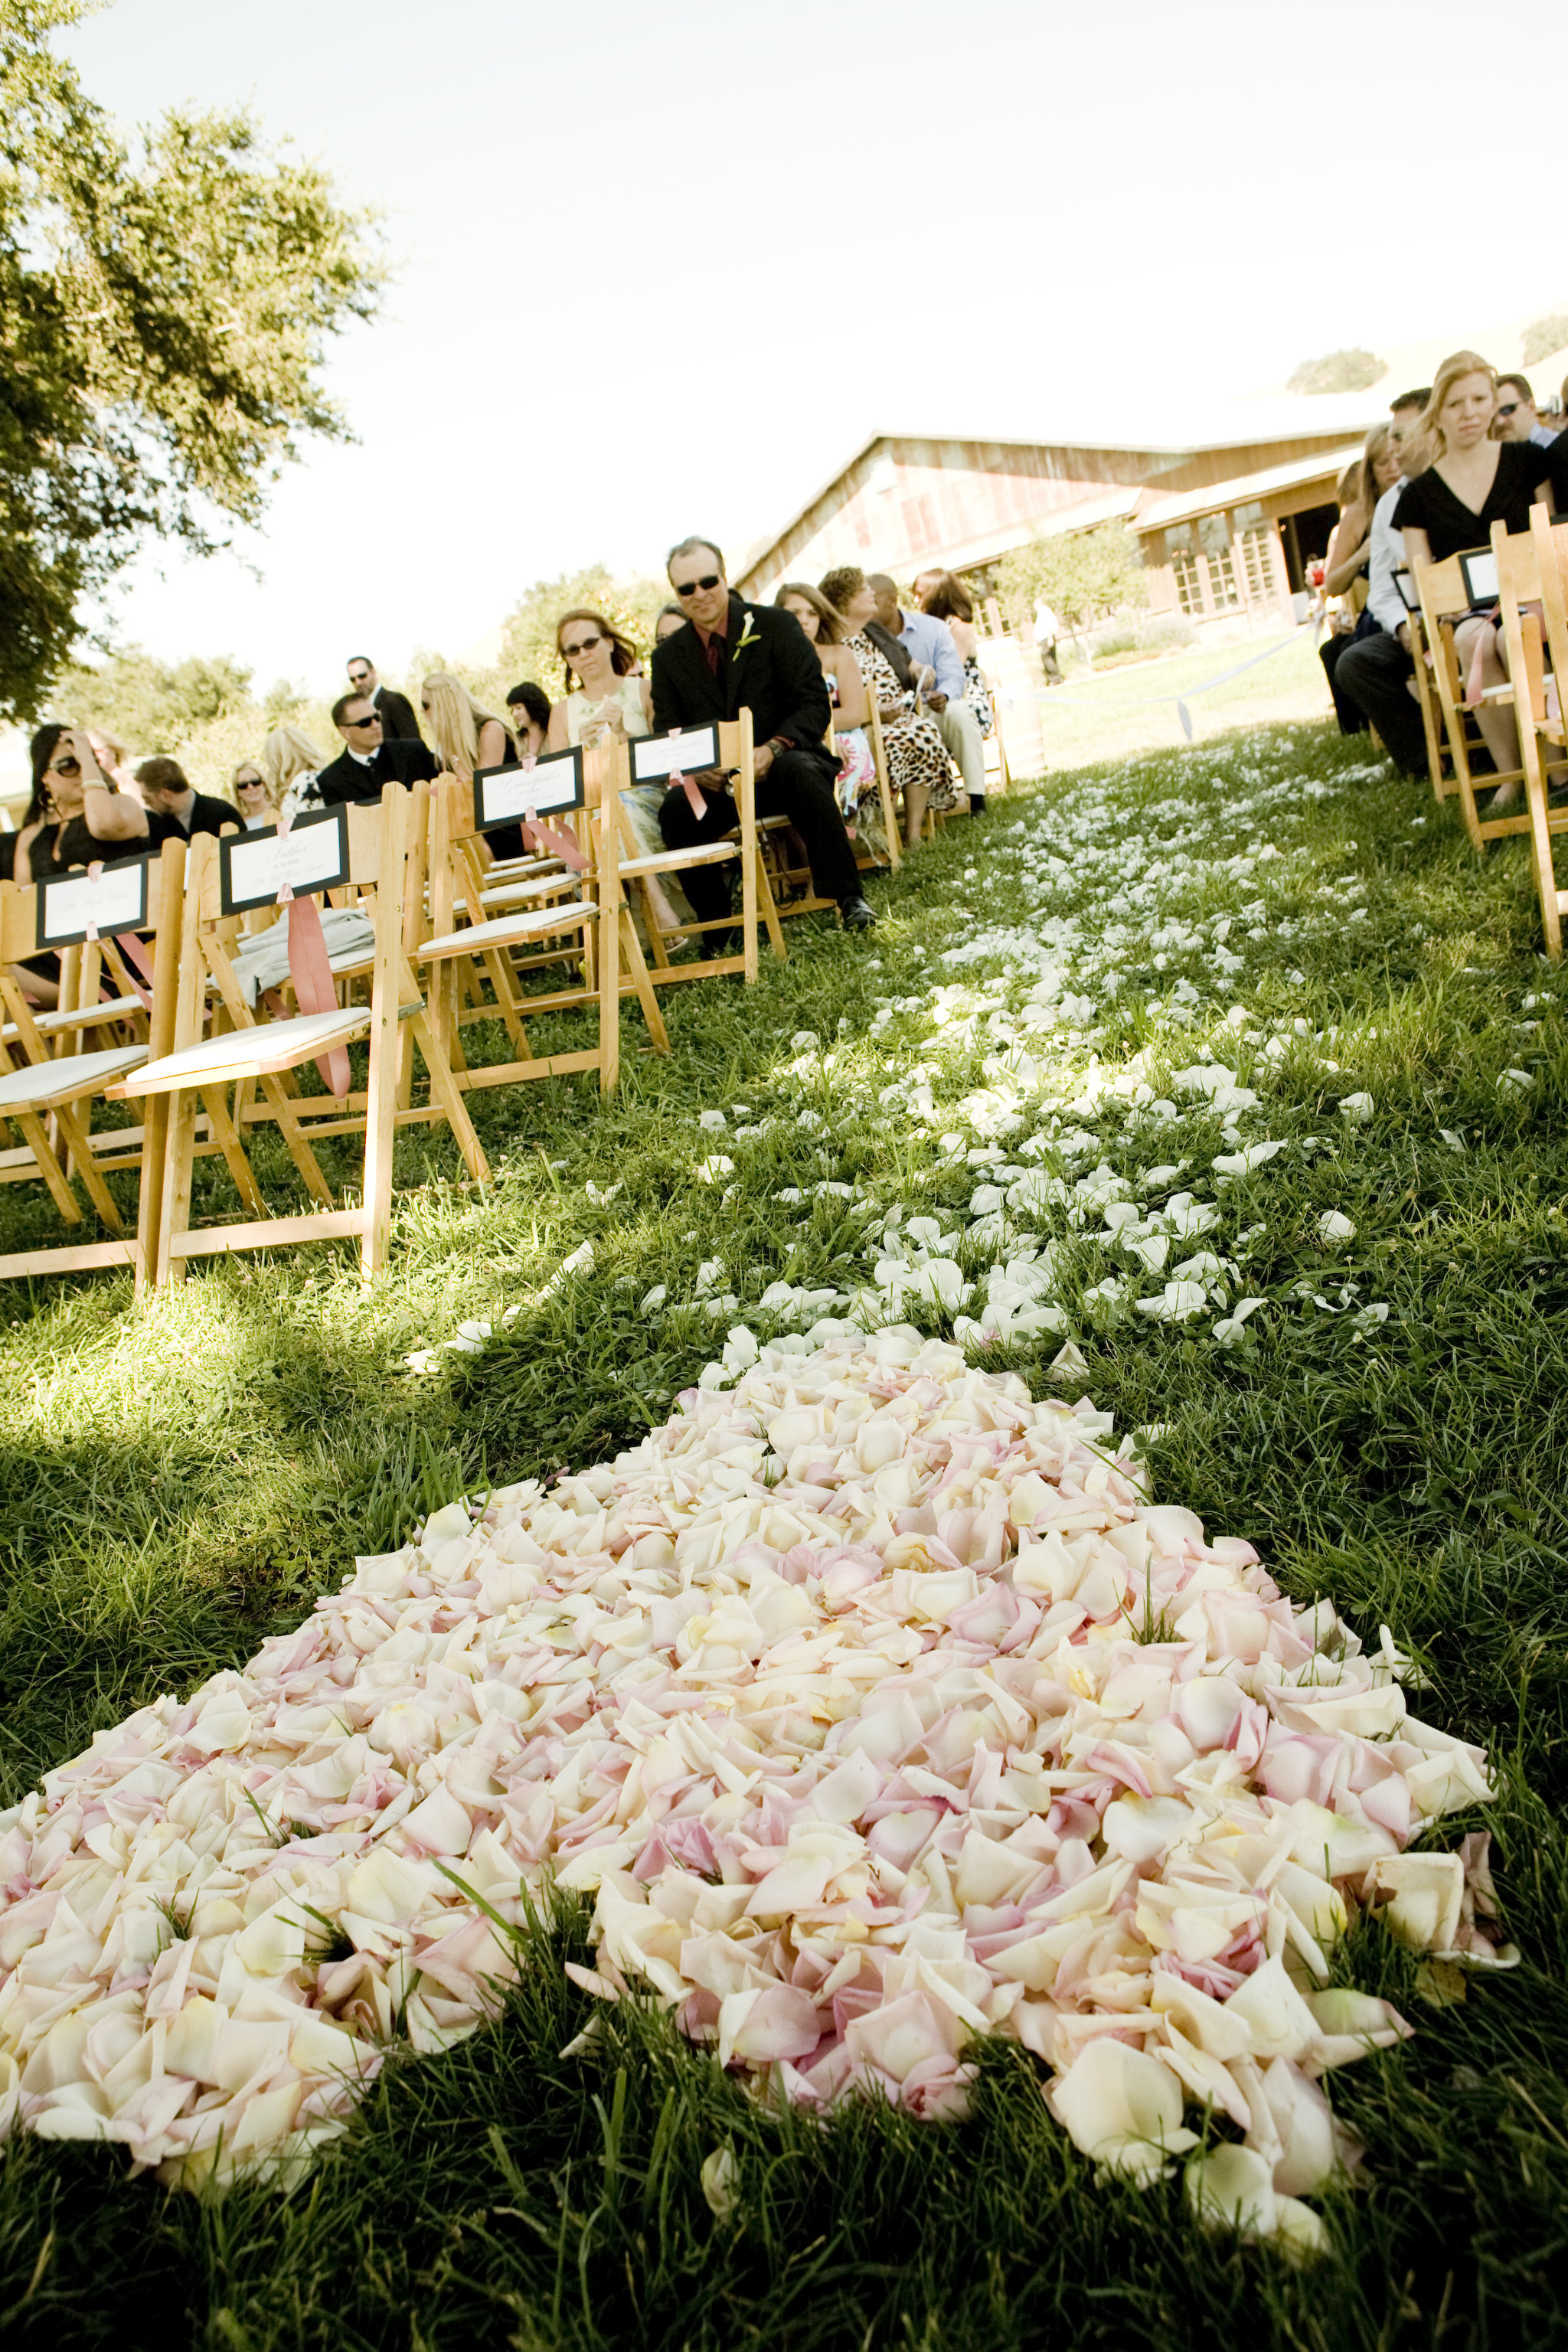 Ceremony, Flowers & Decor, pink, Ceremony Flowers, Aisle Decor, Tables & Seating, Flowers, Firestone, Chairs, Aisle, Crossroads, A taylor made wedding